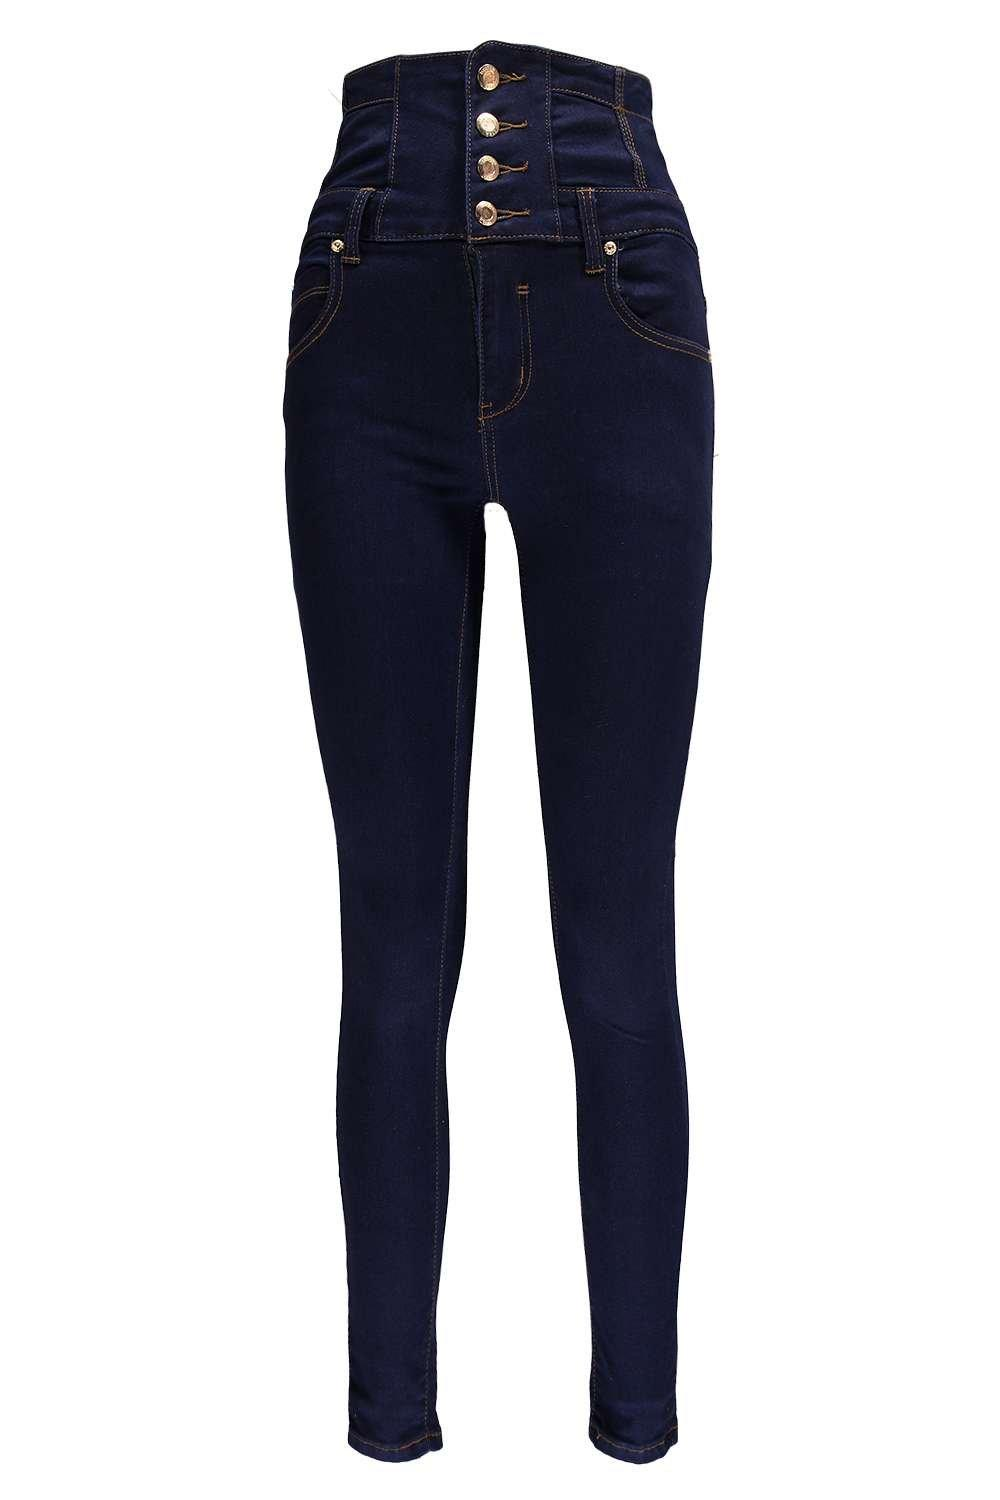 Shop for women's high waisted skinny jeans that feel as good as they look at American Eagle. Visit online for all styles, fits and additional sizes today! Super High-Waisted Jegging High-Waisted Jegging High-Waisted Jegging Crop.